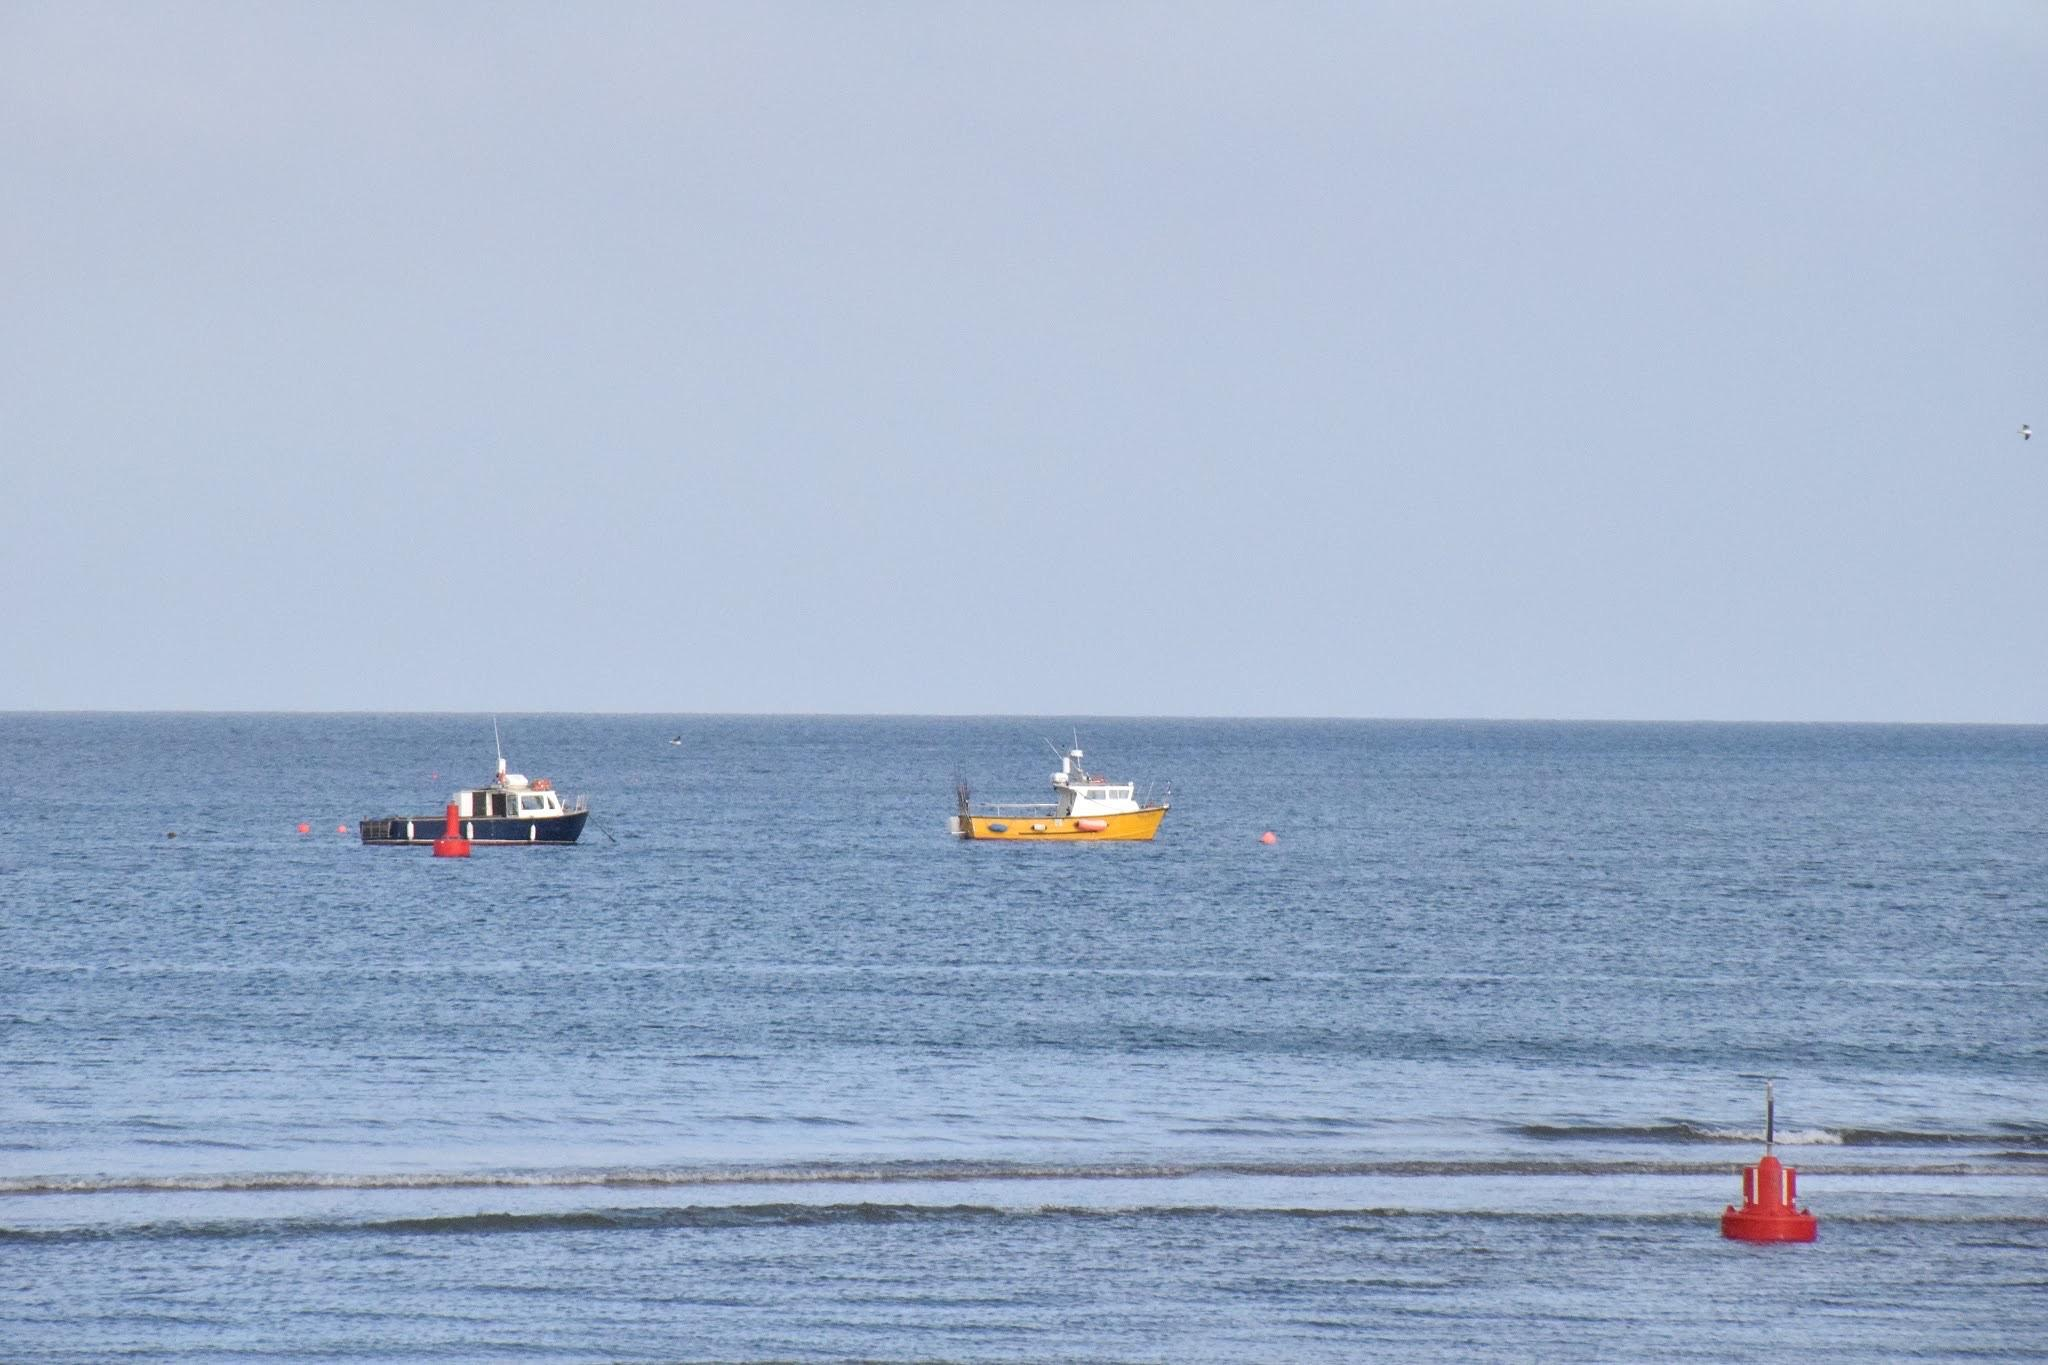 saundersfoot by Abyd